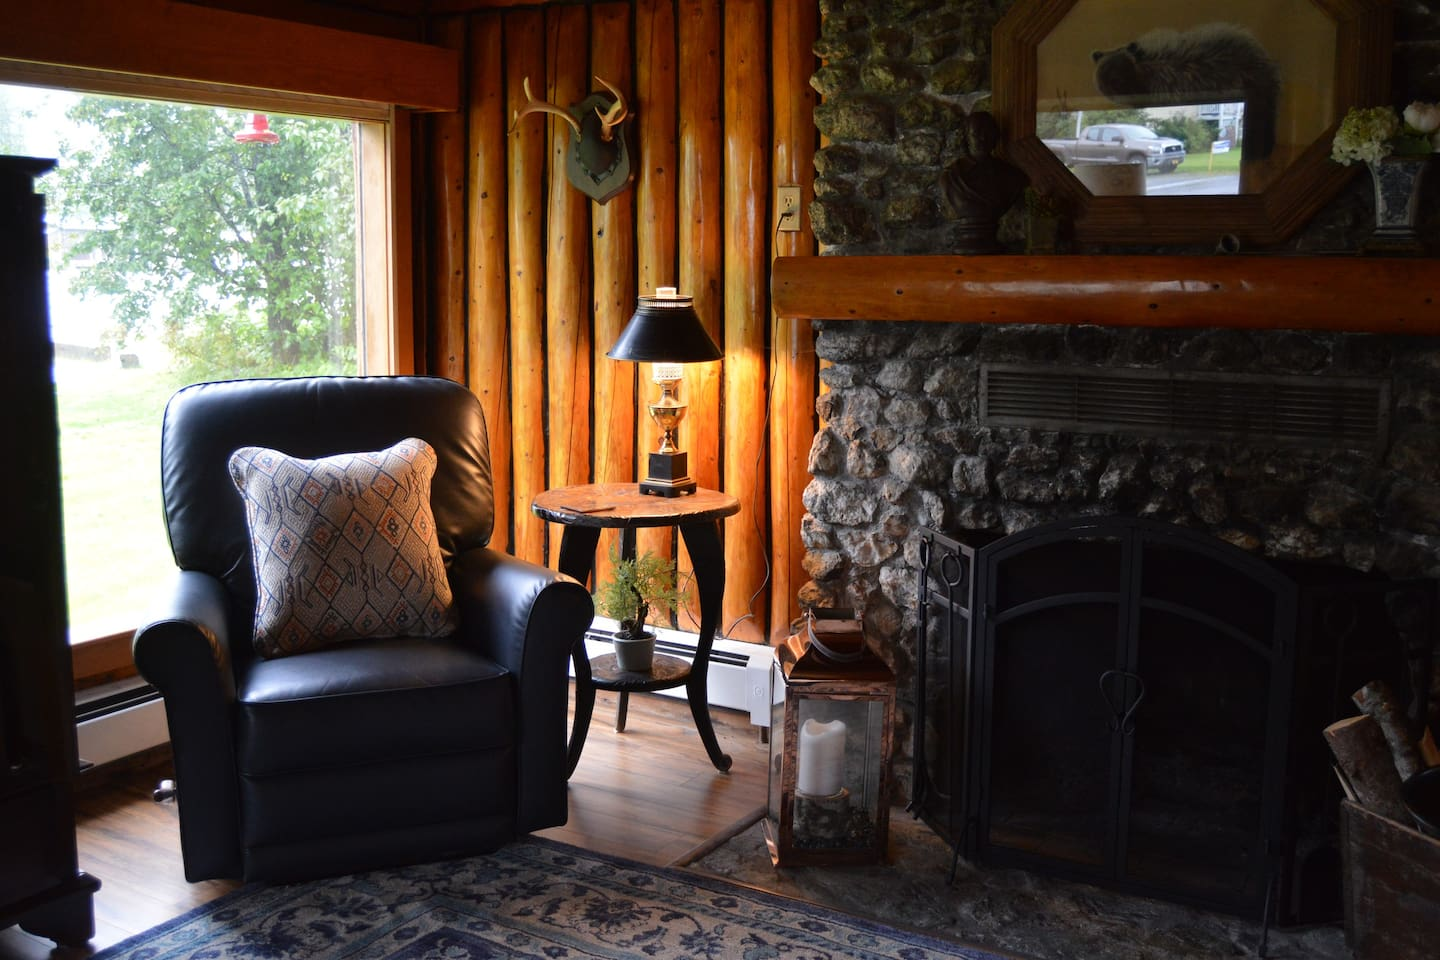 Stay in the quintessential, historic Alaskan home.